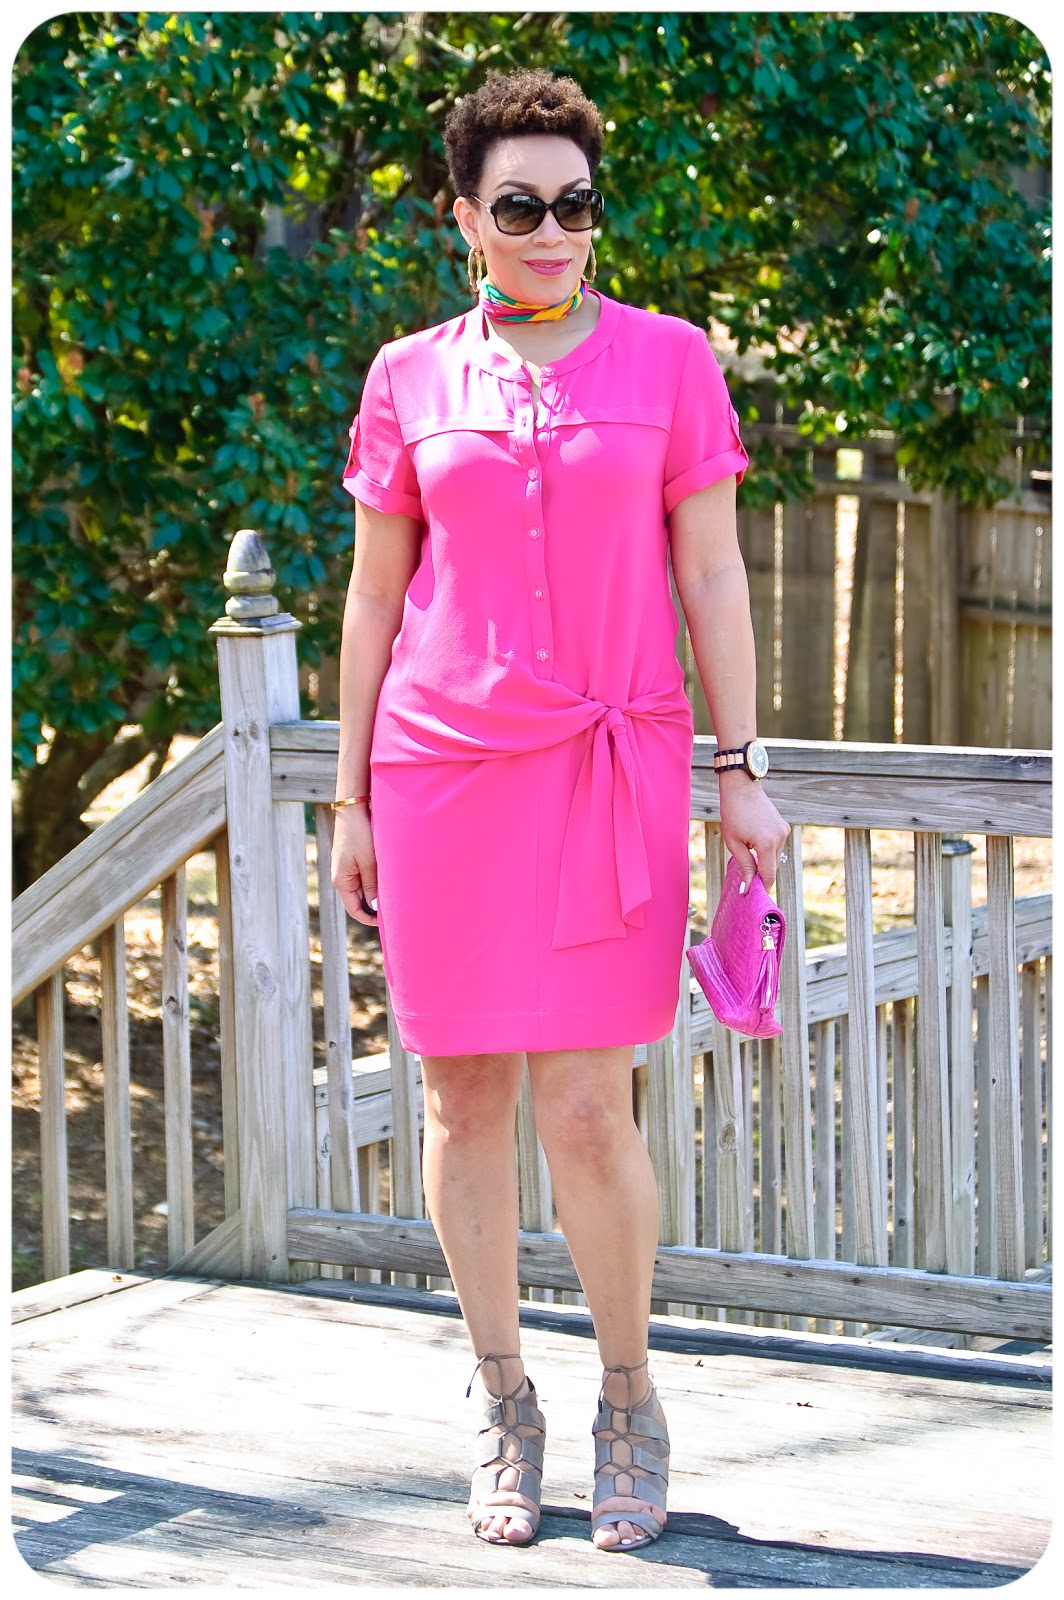 Vogue Patterns 1488 | Bold-Colored Shirtdress - Erica Bunker DIY Style!